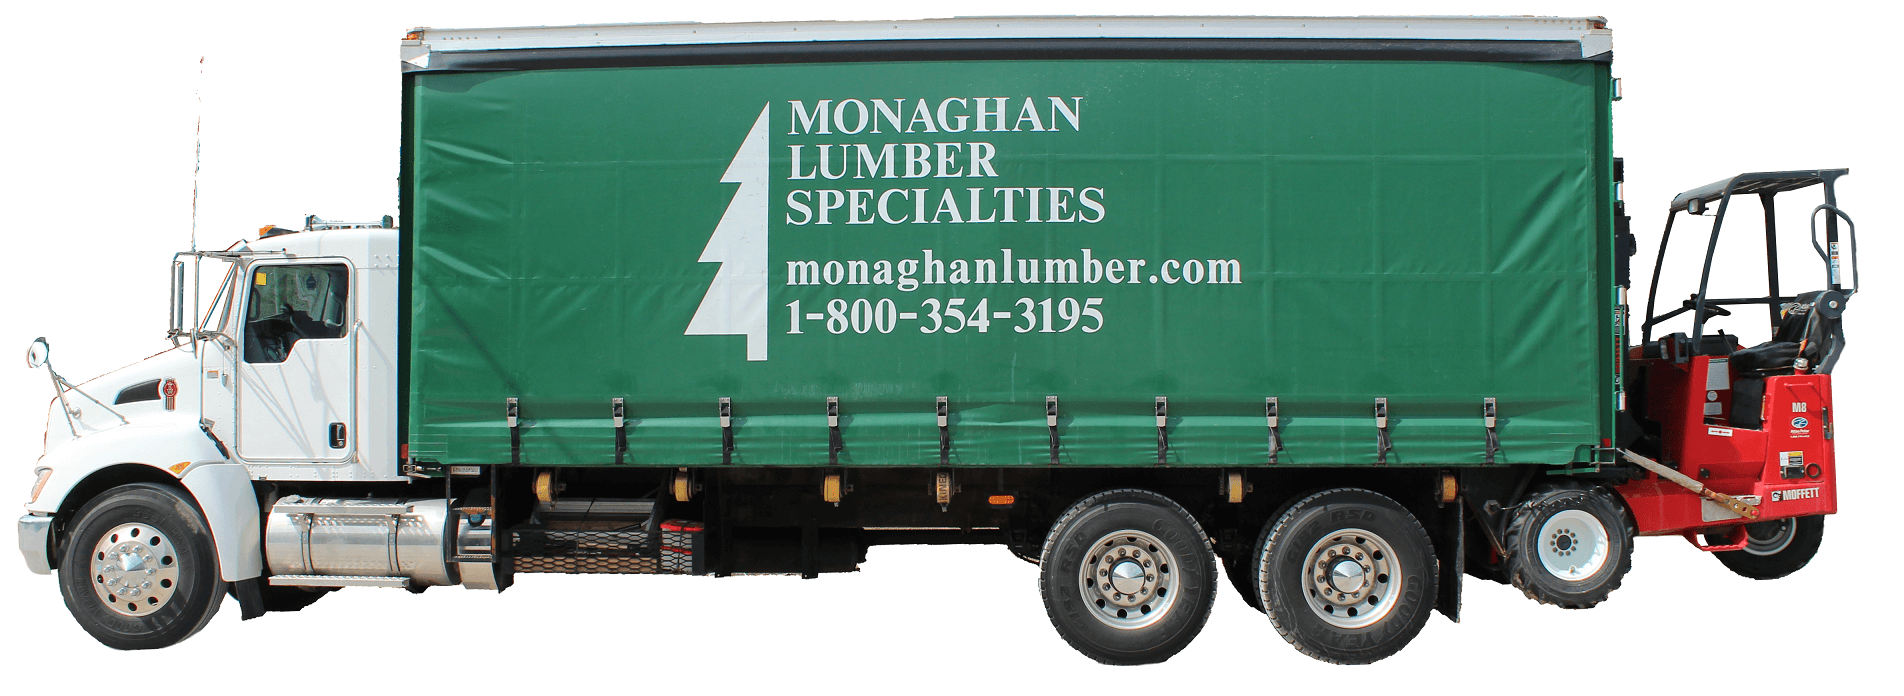 Delivery Monaghan Lumber Specialties